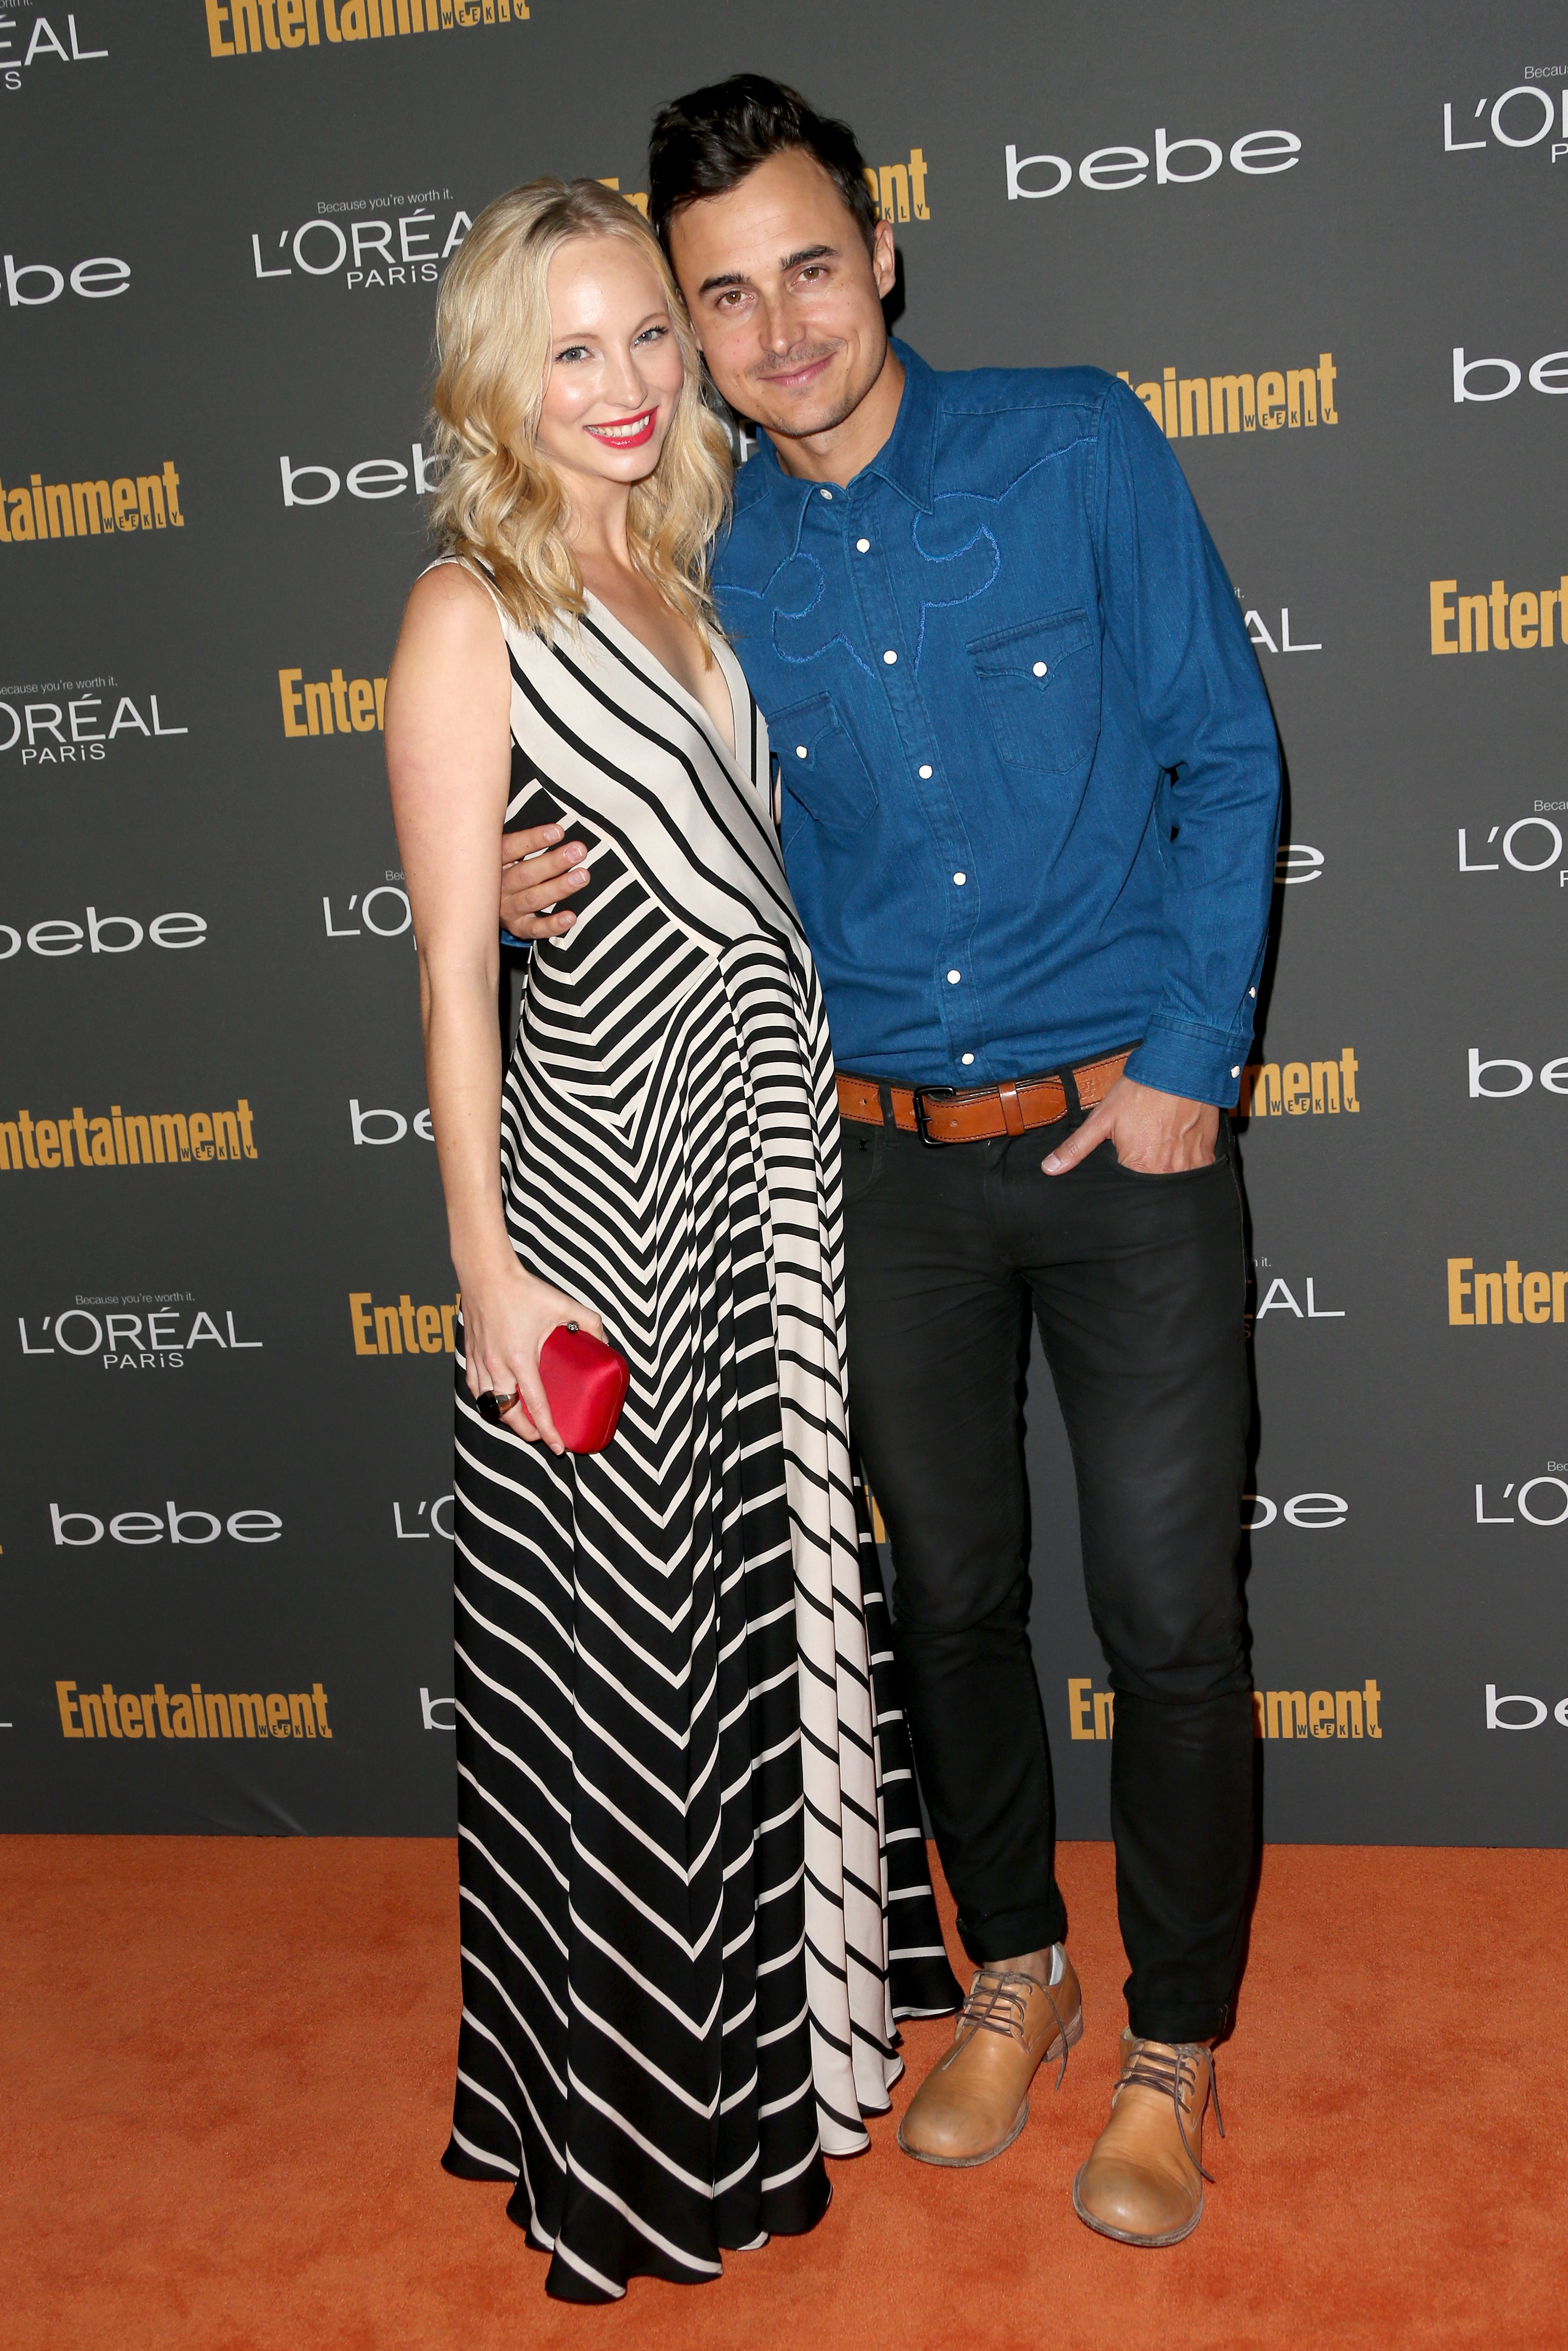 is candice accola dating joe king Candice accola and her rocker husband joe king candice and joe (image: wenn) the pair got hitched back in 2014 after joe proposed in may 2013 the baby will be candice's first child, but it will be joe's third child the guitarist, 35, already has two children - elise and ava - with his ex wife-who he.